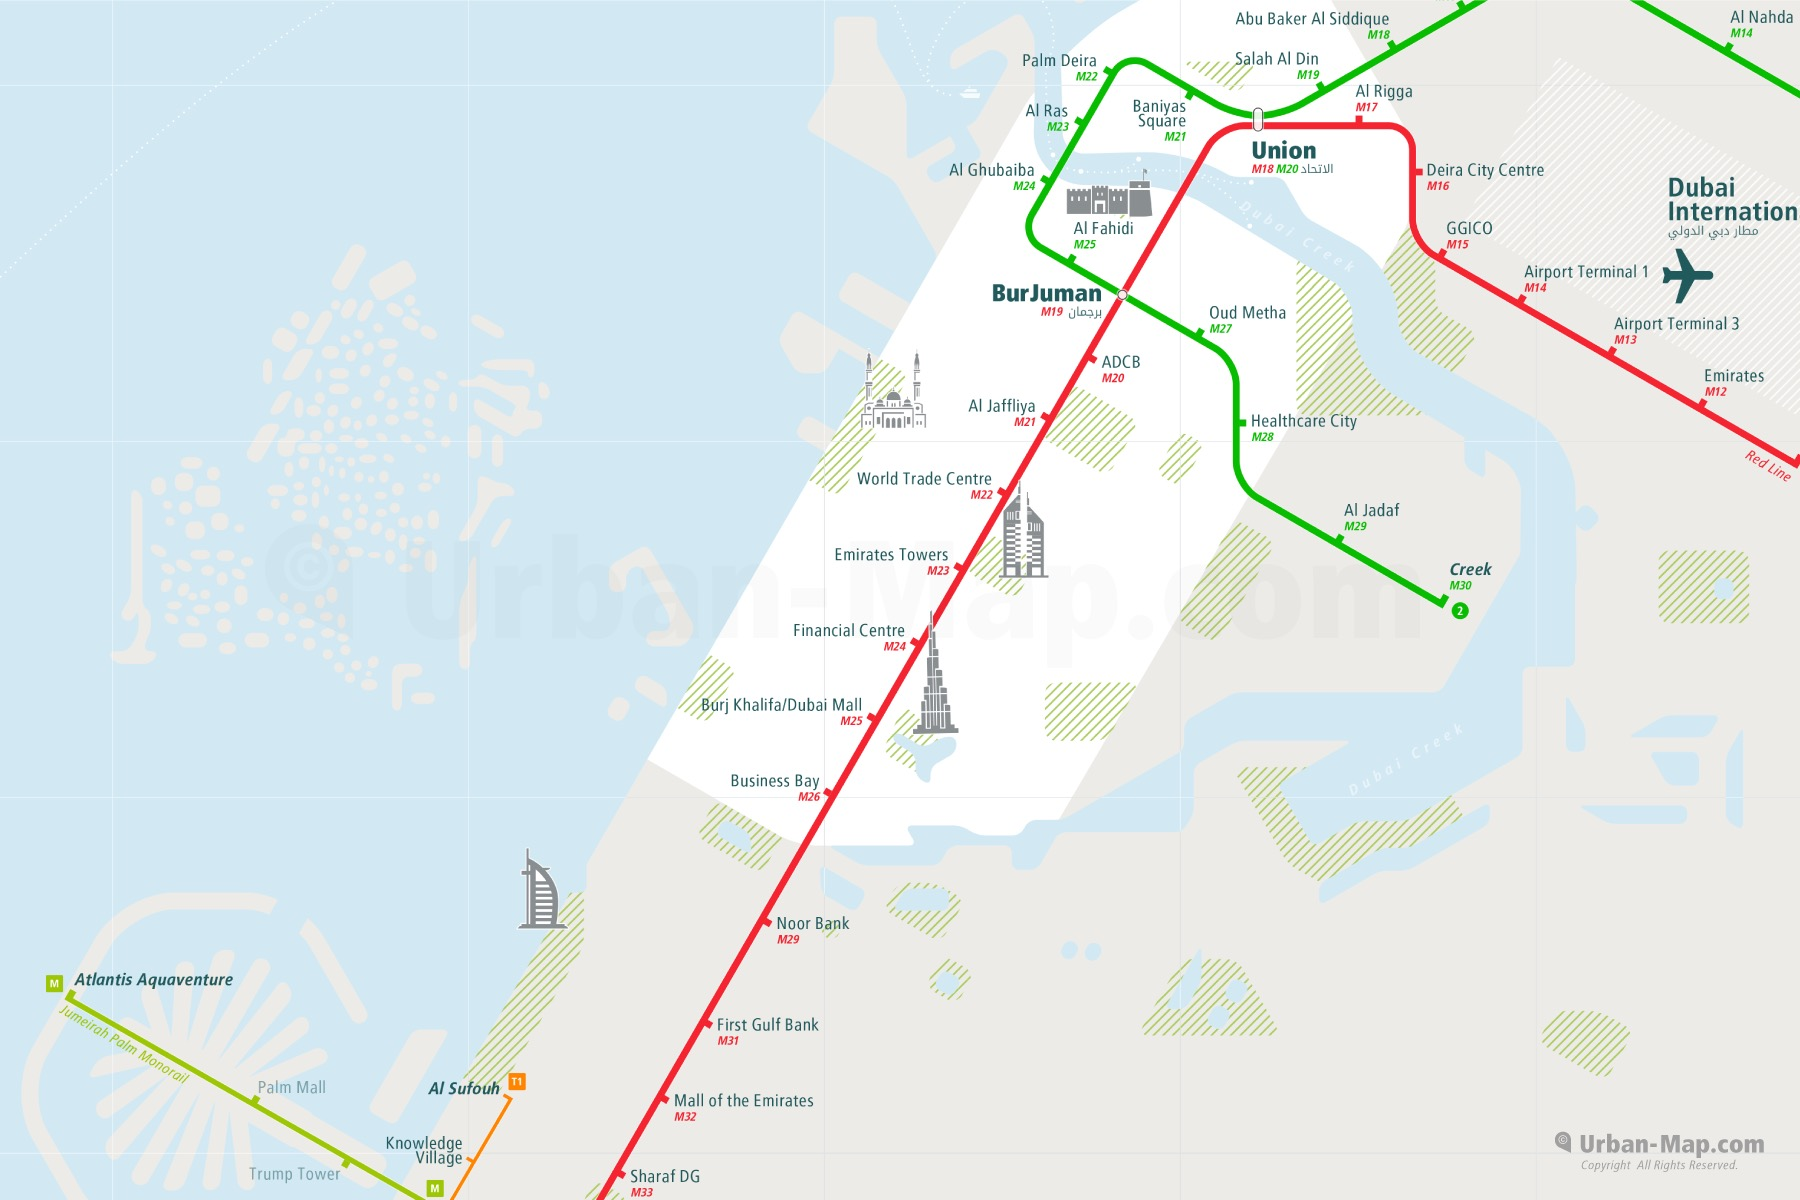 Dubai City Rail Map shows the train and public transportation routes of Metro, Monorail - Close-Up